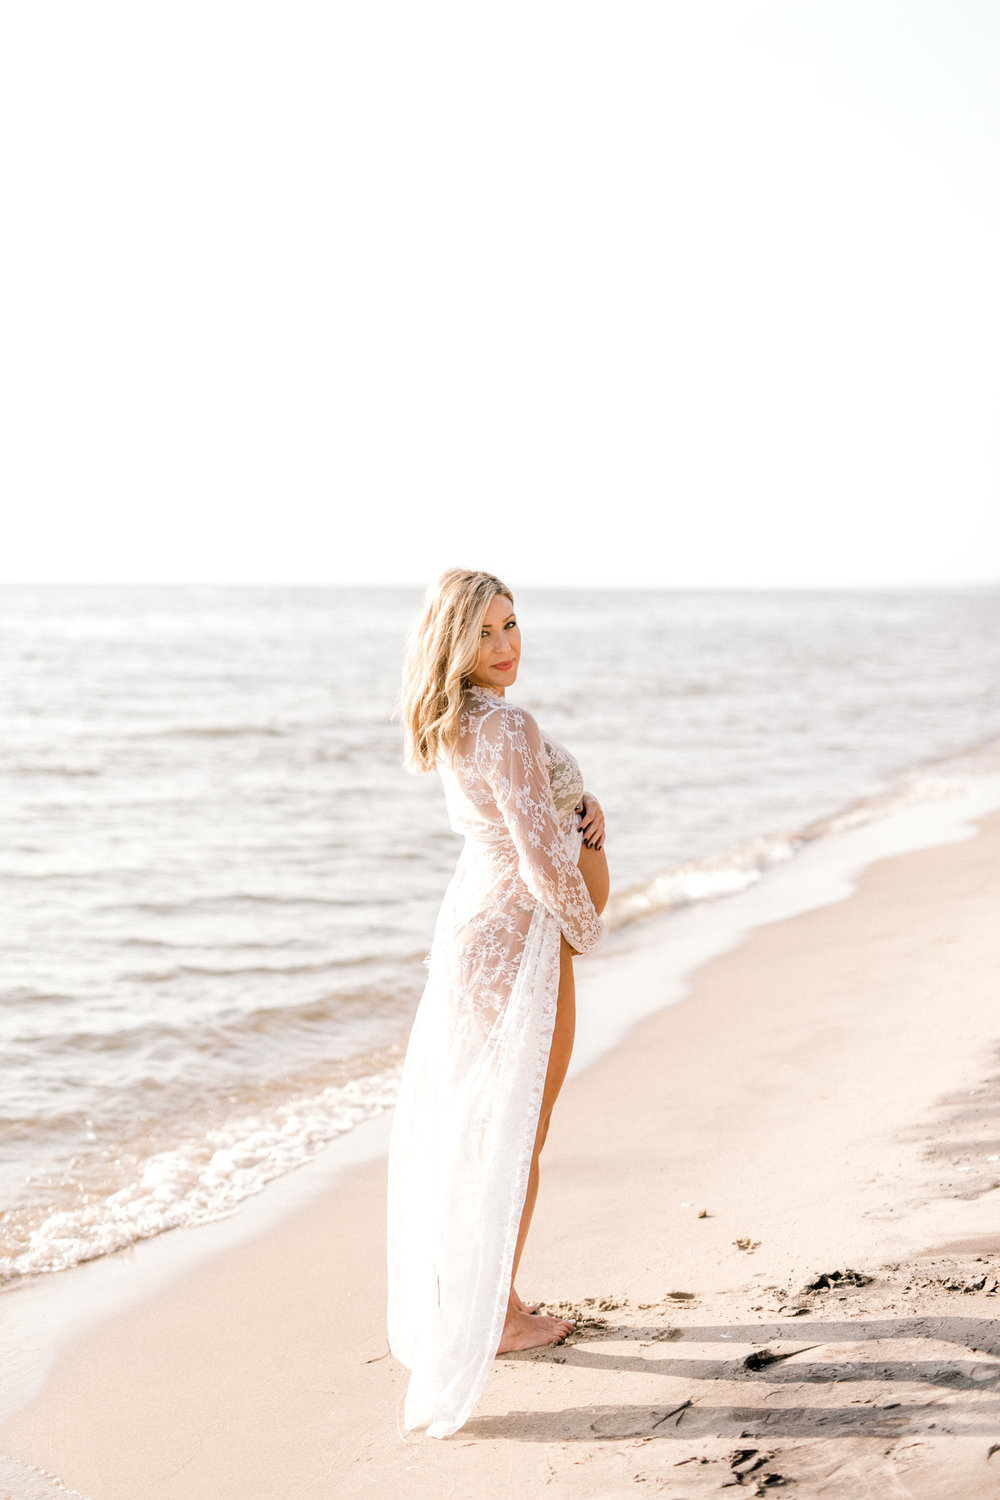 Sexy Summer Maternity Session at the Beach | Lake Michigan Maternity Session | Light & Airy Maternity | West Michigan Maternity Photographer | Laurenda Marie Photography